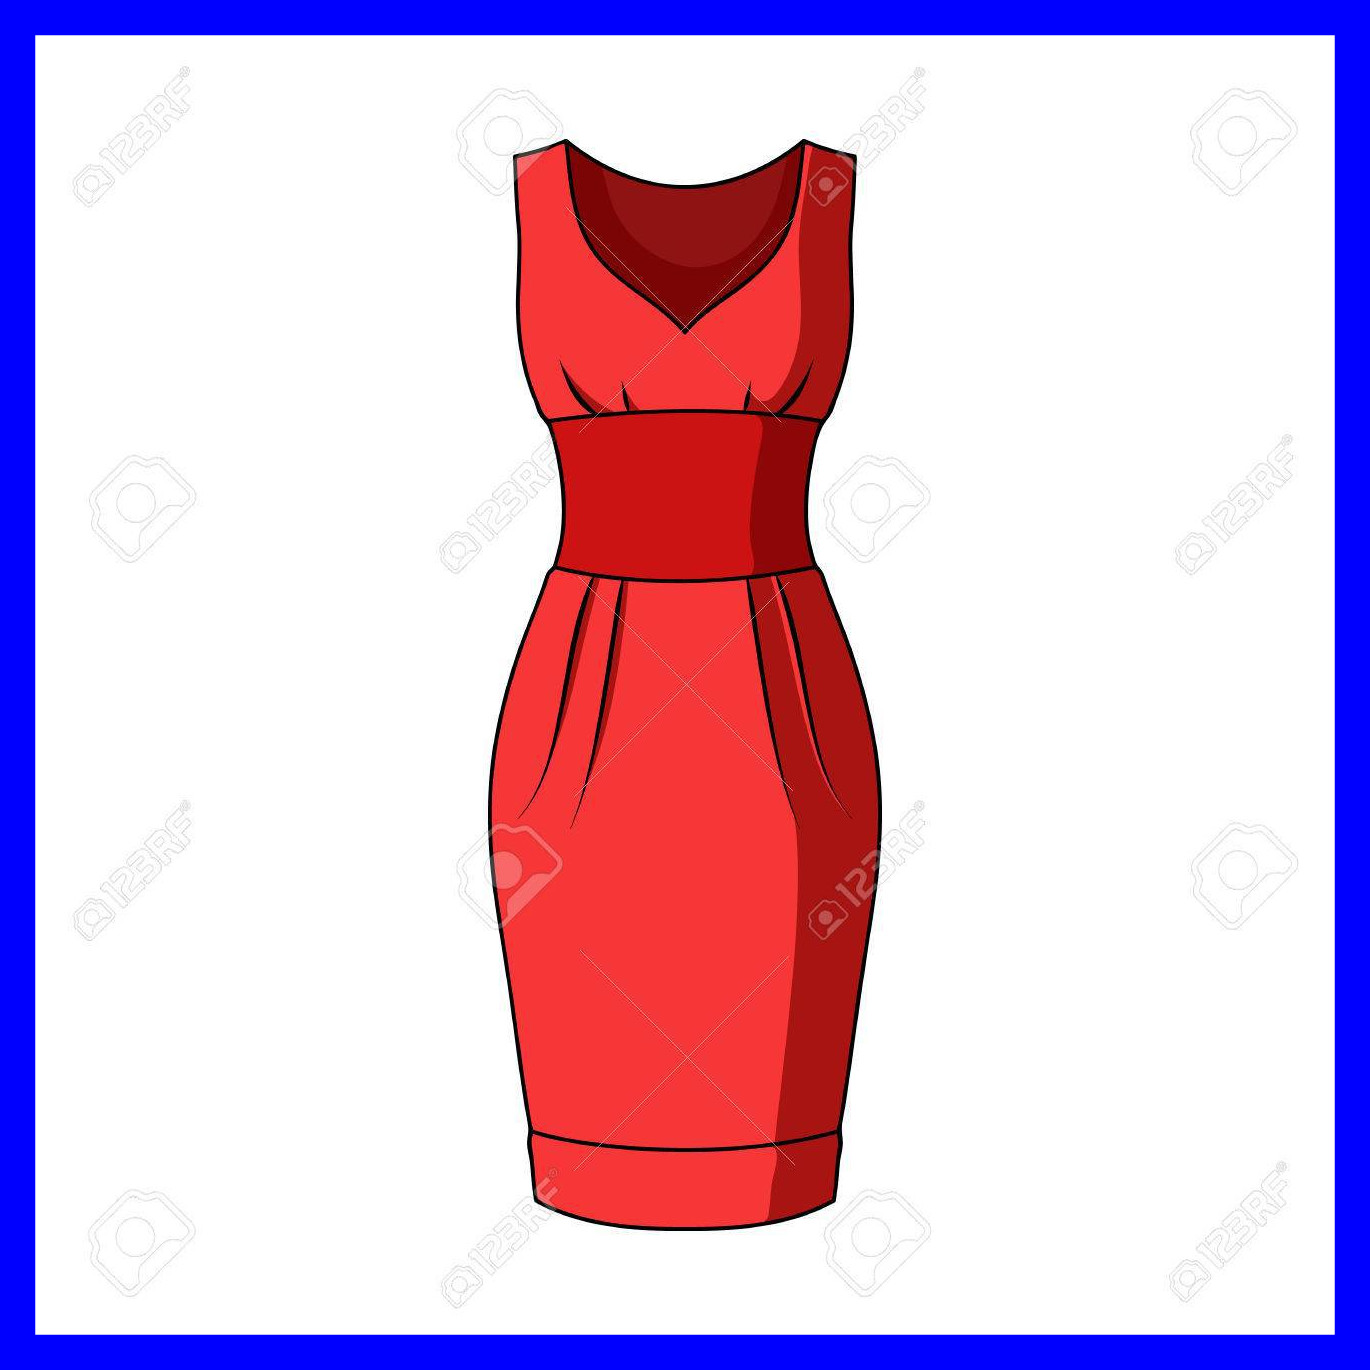 1370x1370 Shocking Ball Gown Evening Dress Clip Art Png For Design Trend